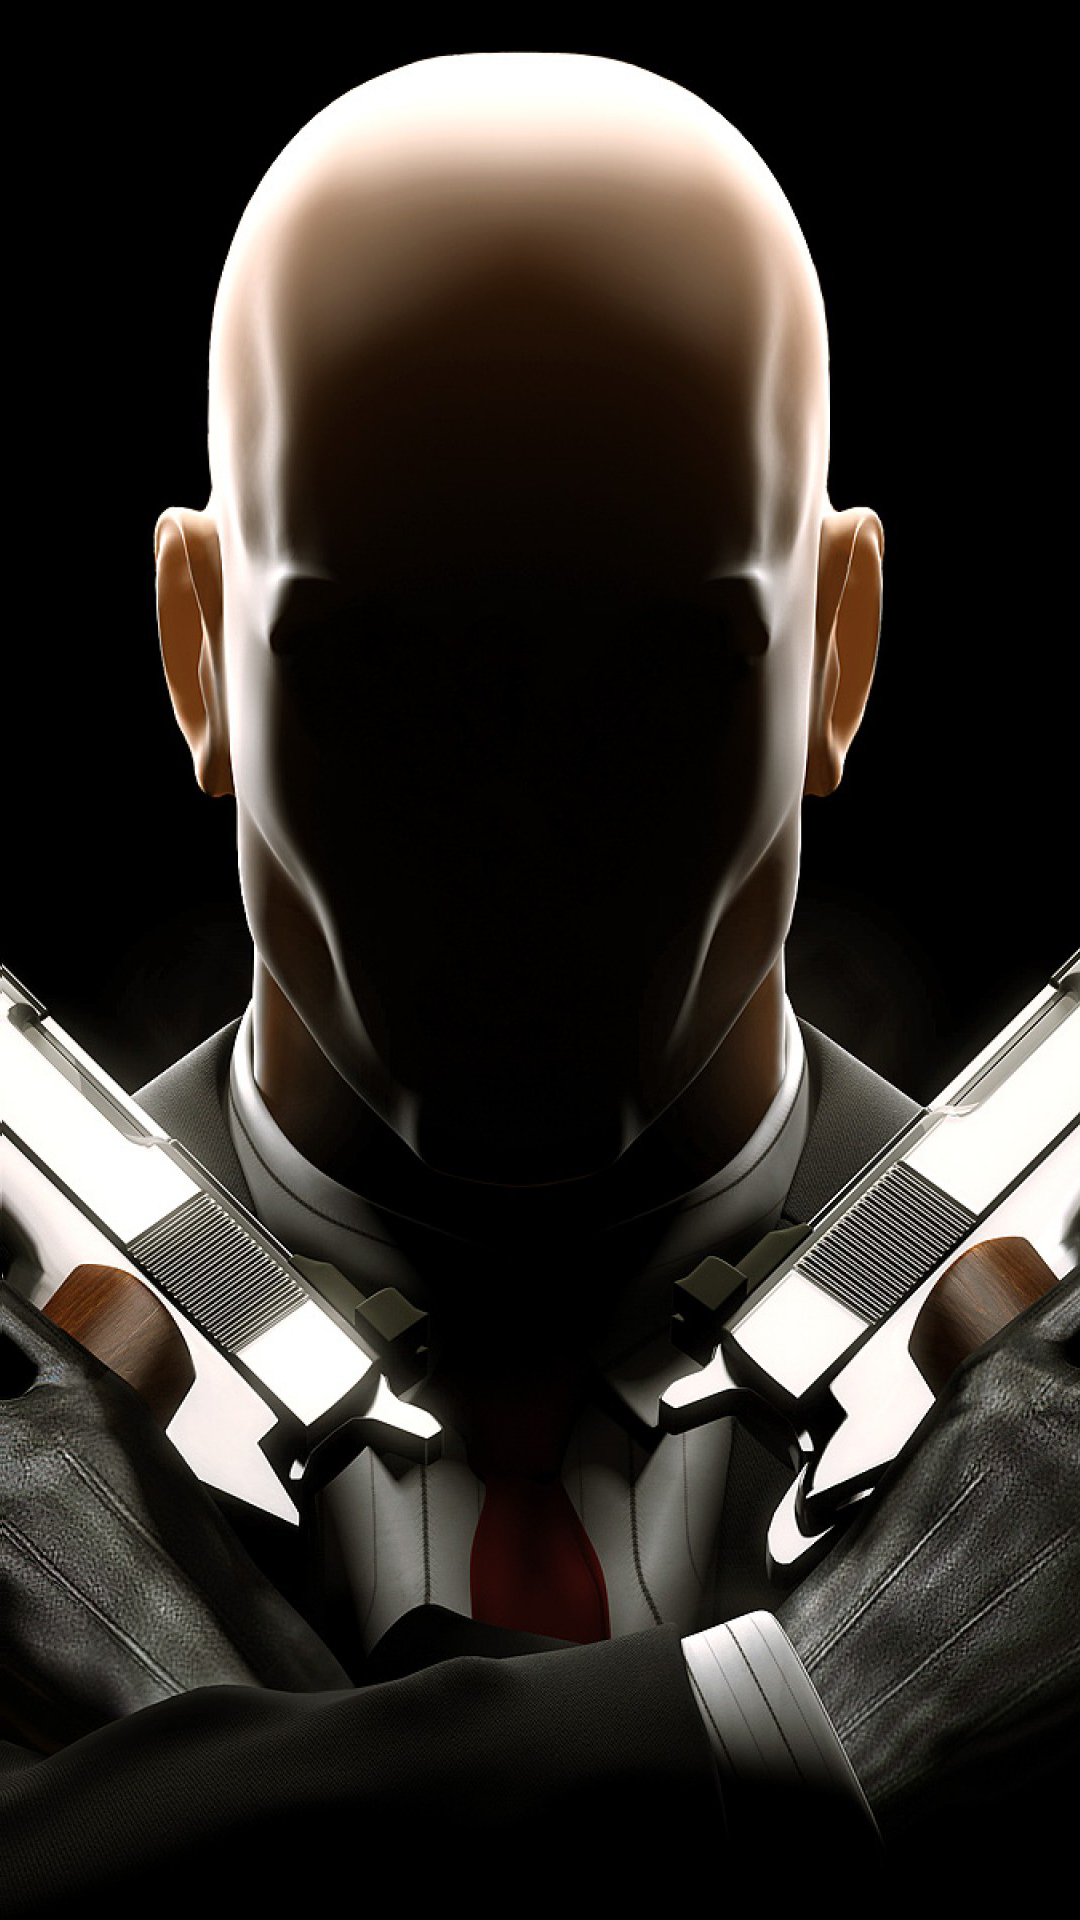 Hitman 47 1080 x 1920 FHD Wallpaper Hitman 47 1080 x 1920 FHD Wallpaper